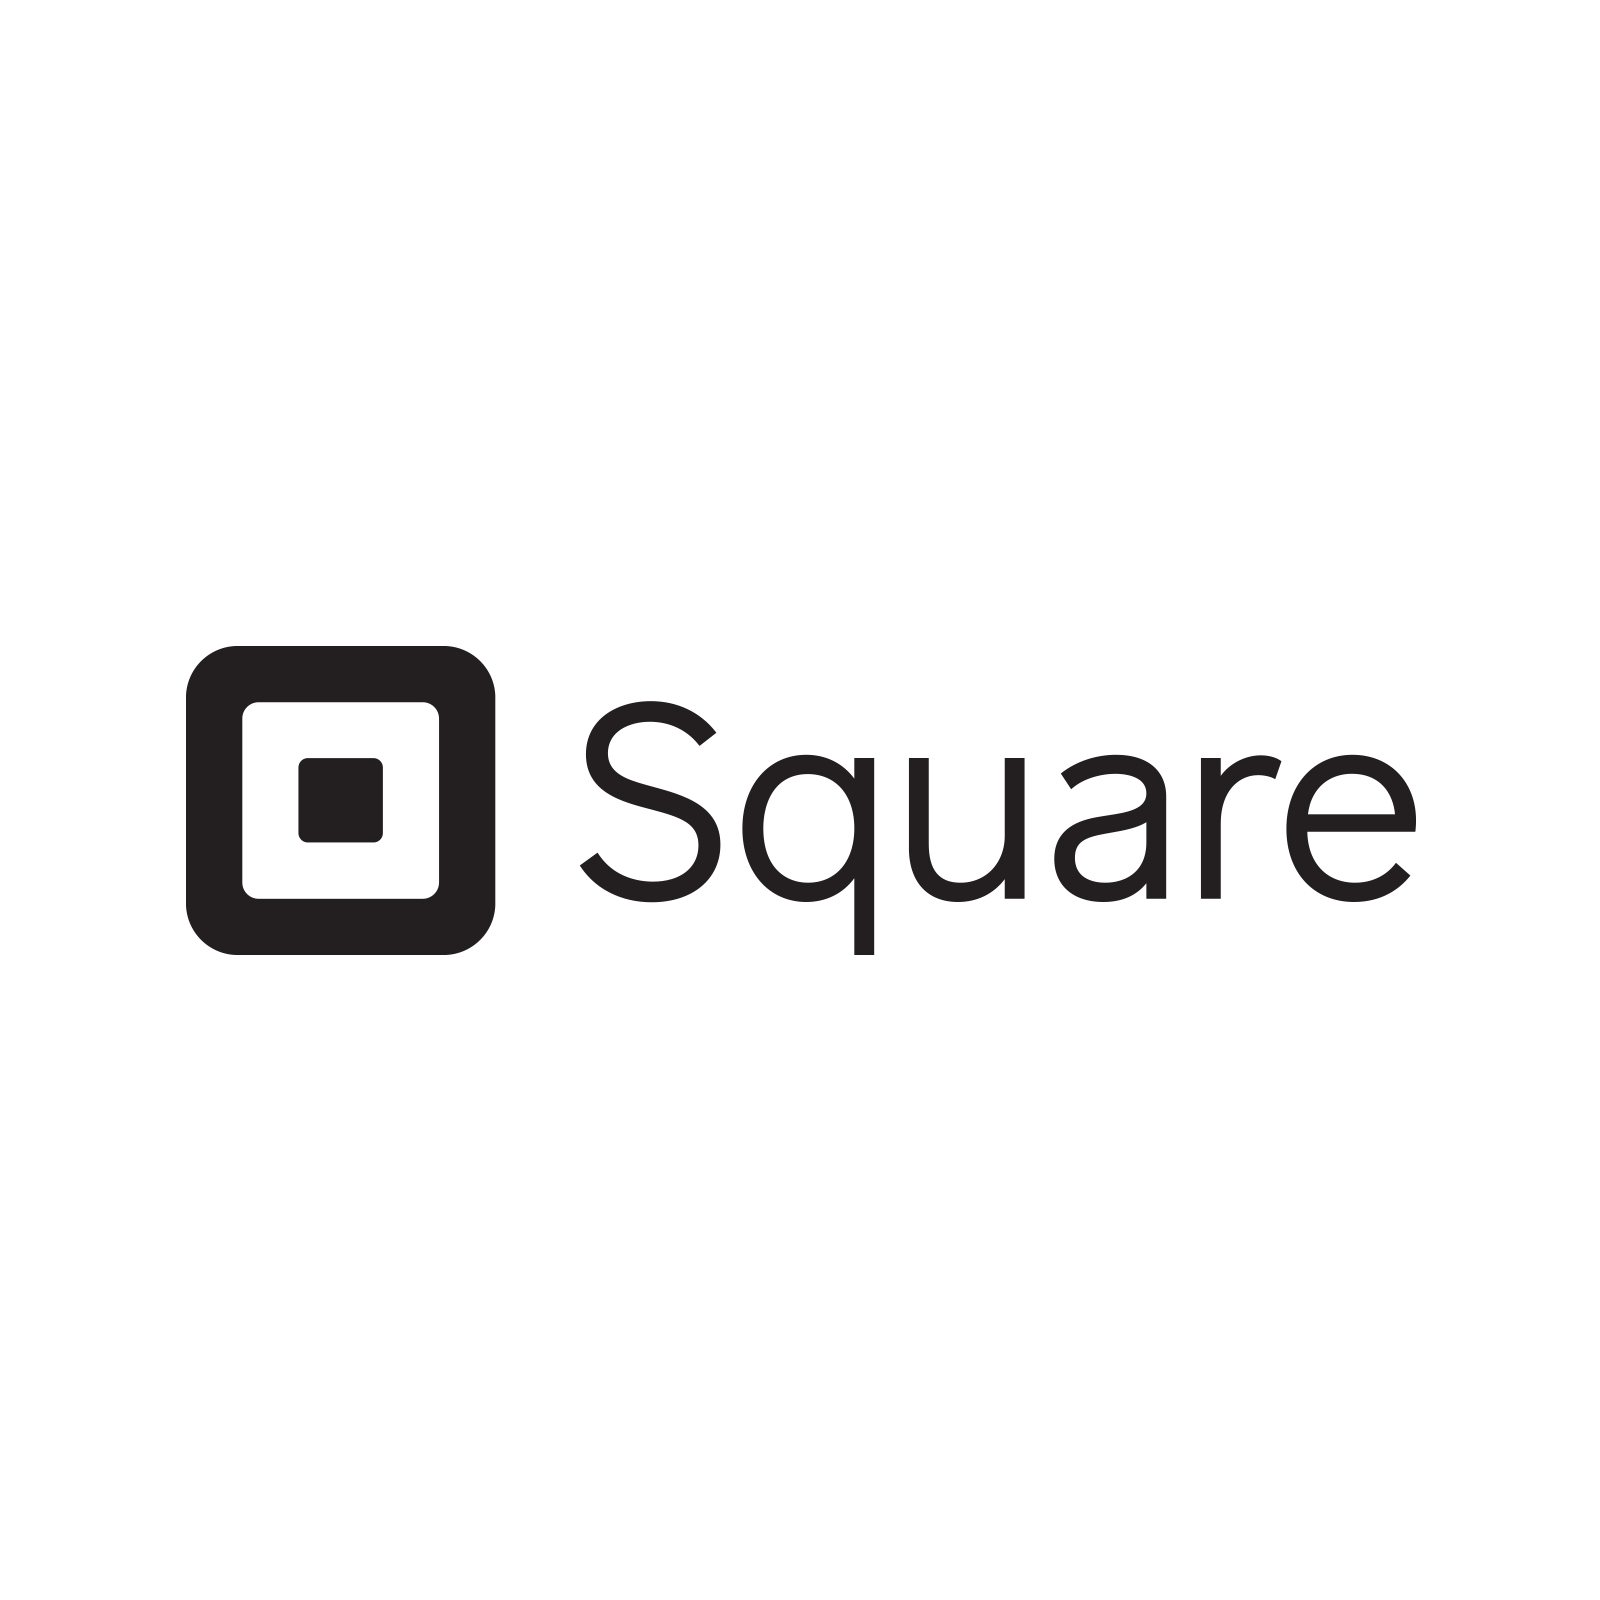 Lightning Strikes! Square Plans to Roll Out Lightning Network on Cash App